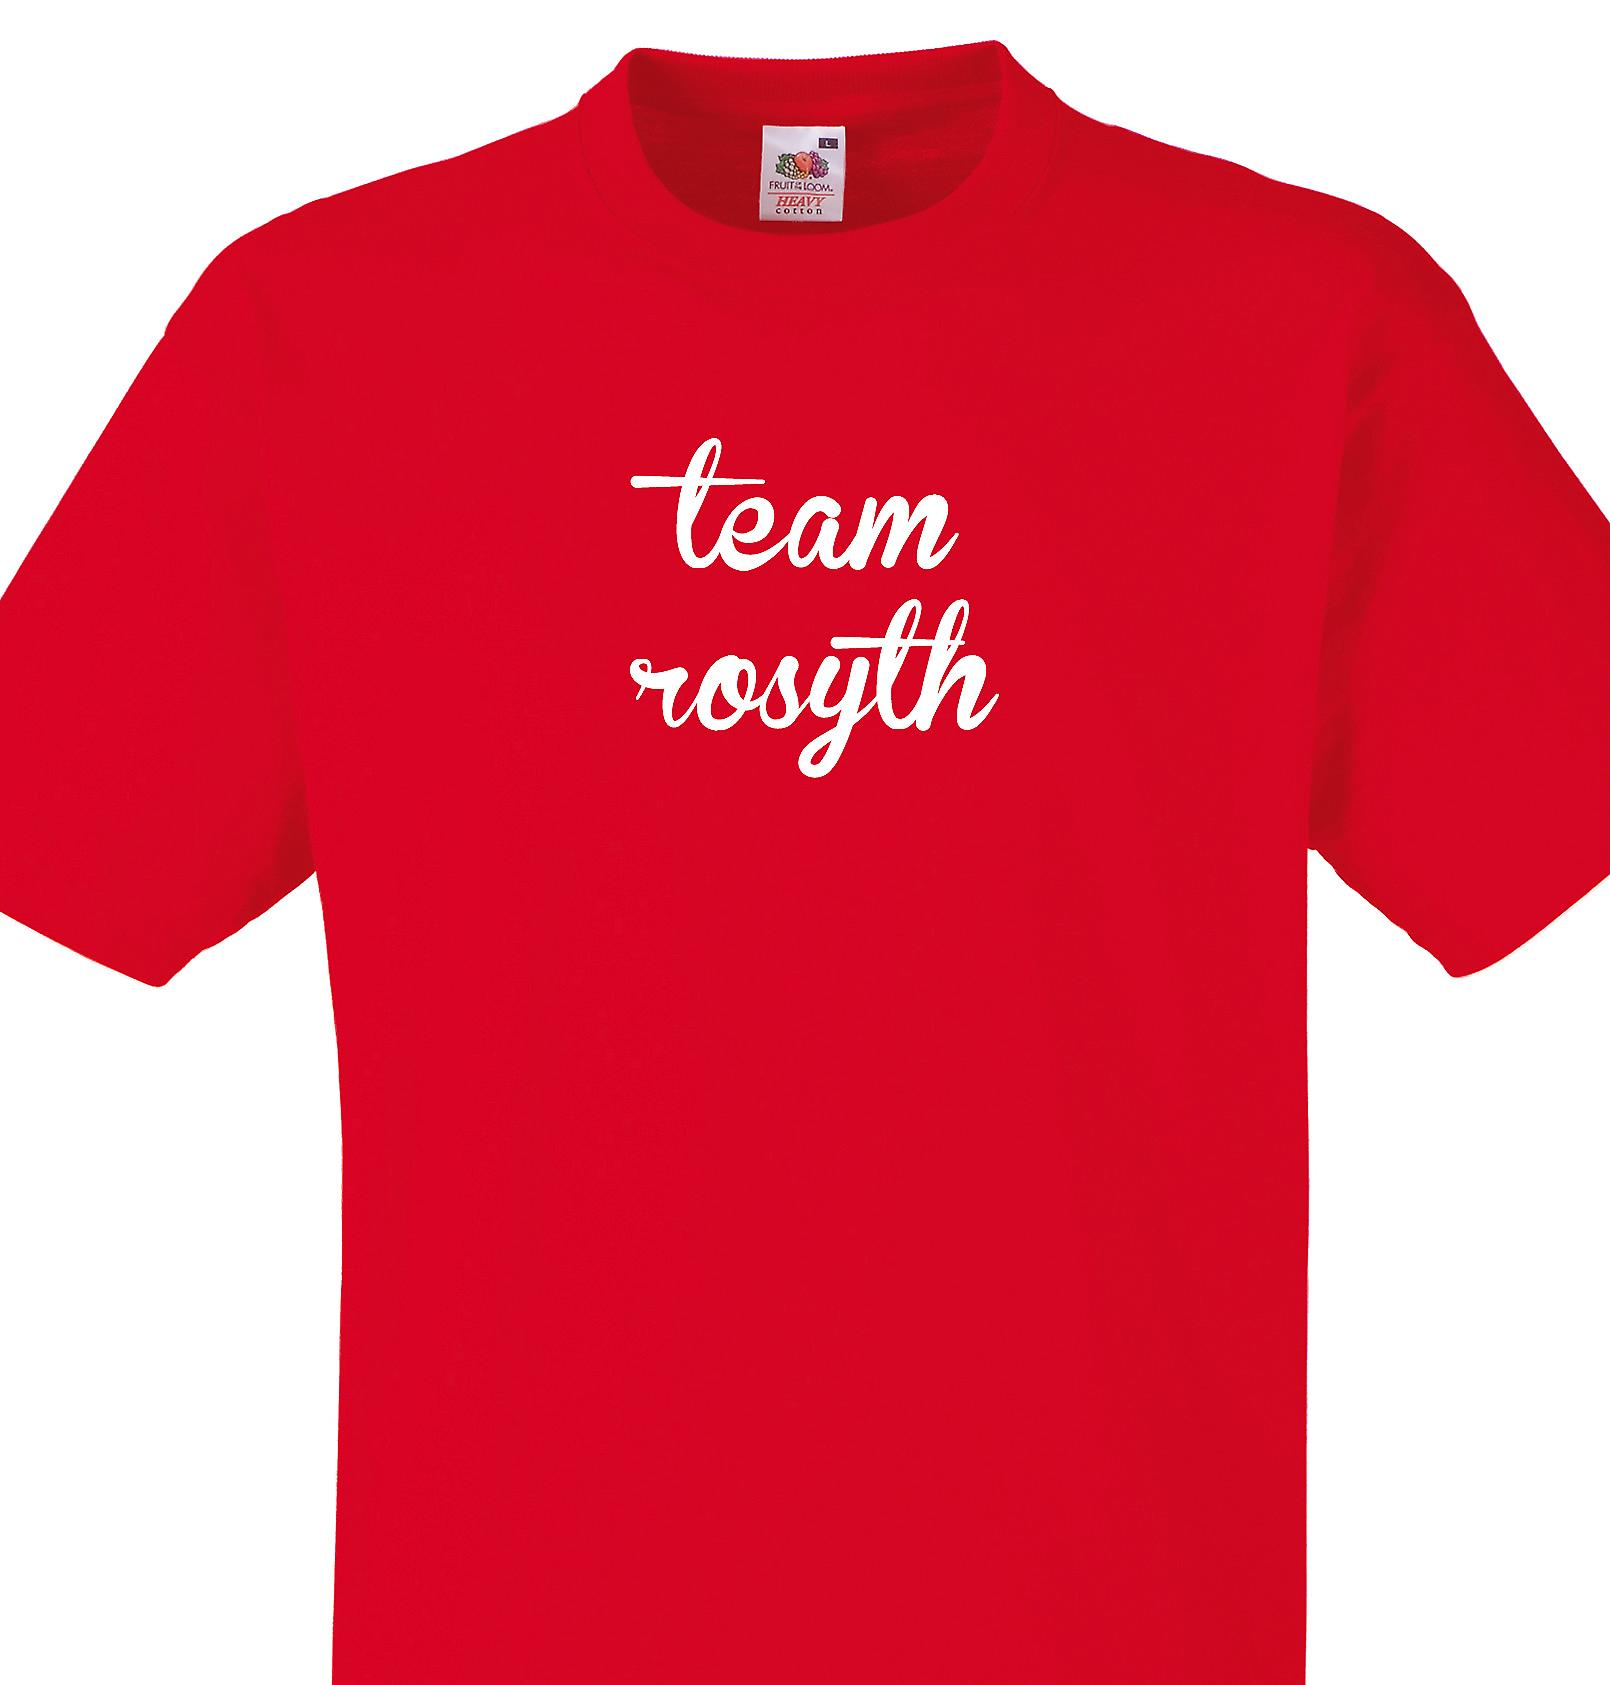 Team Rosyth Red T shirt